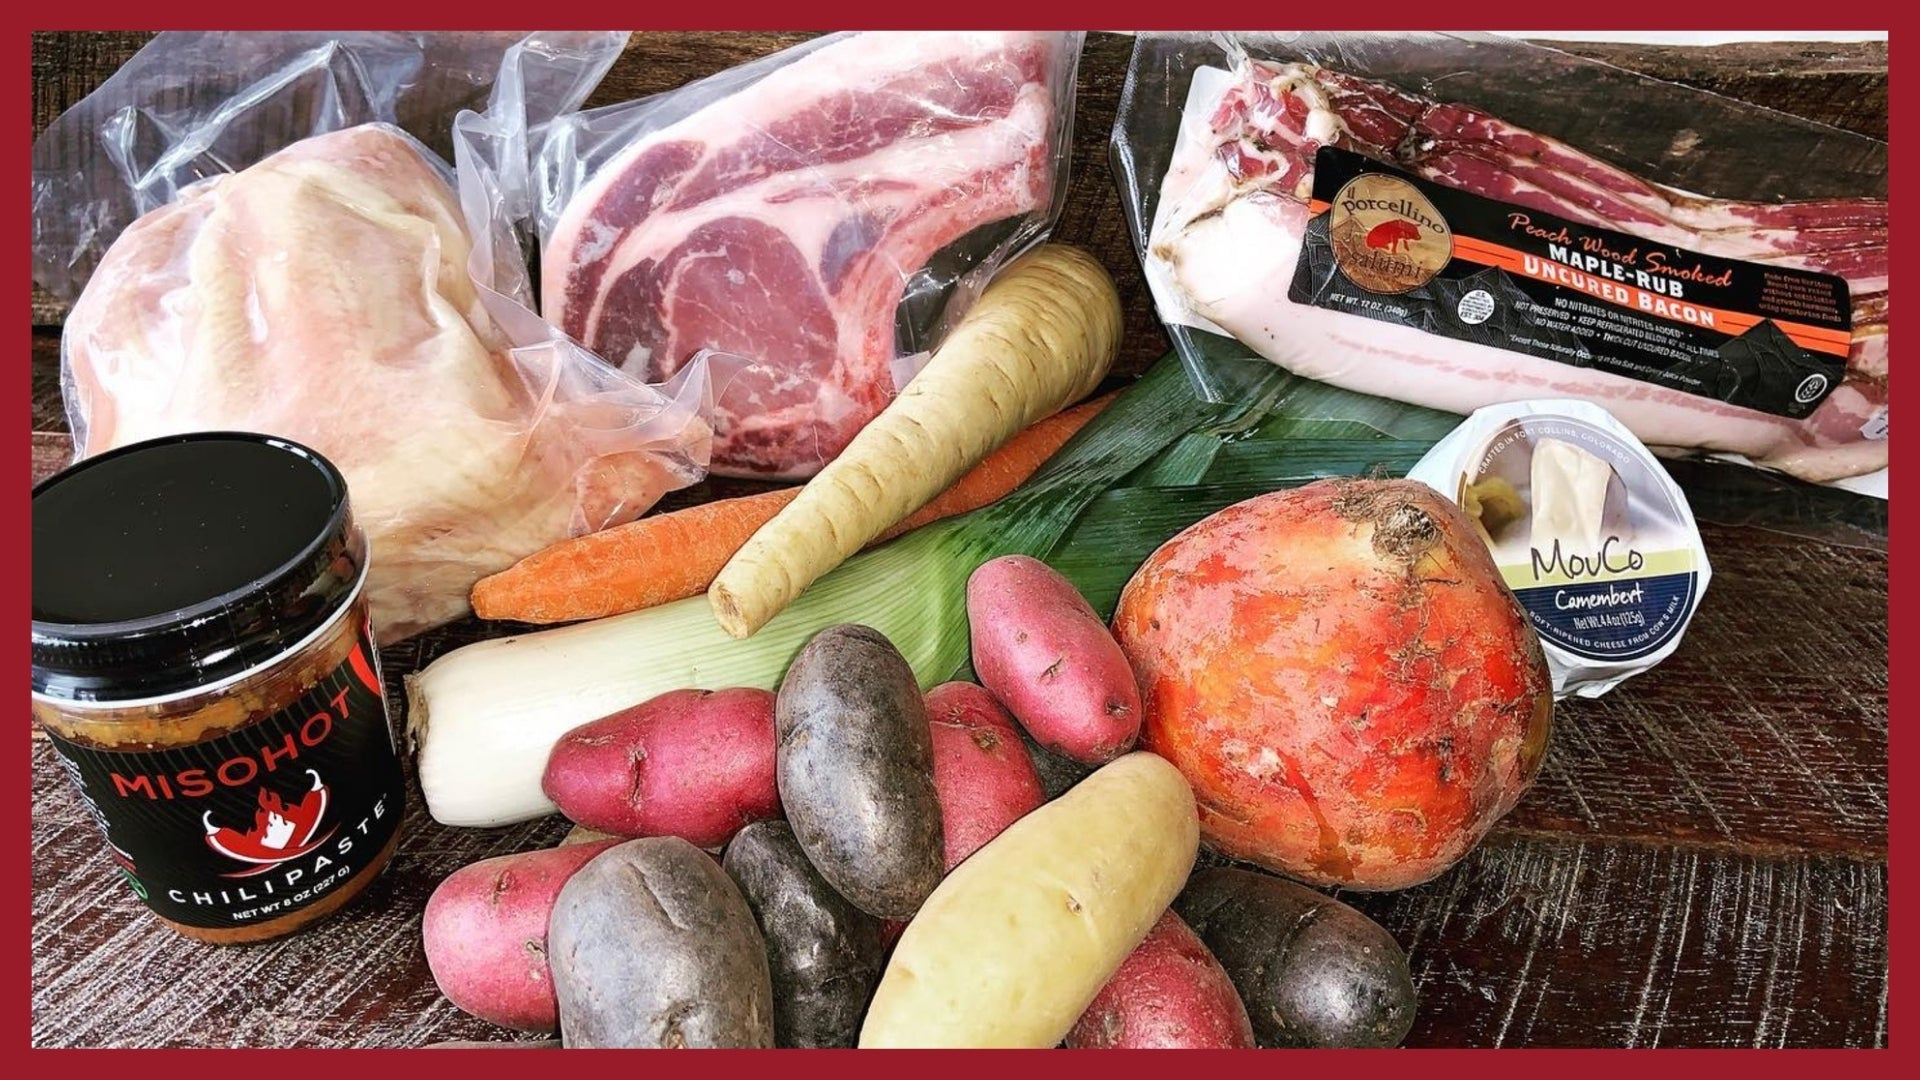 A picture of vegetables, meat, cheese and canned goods on a wood table.